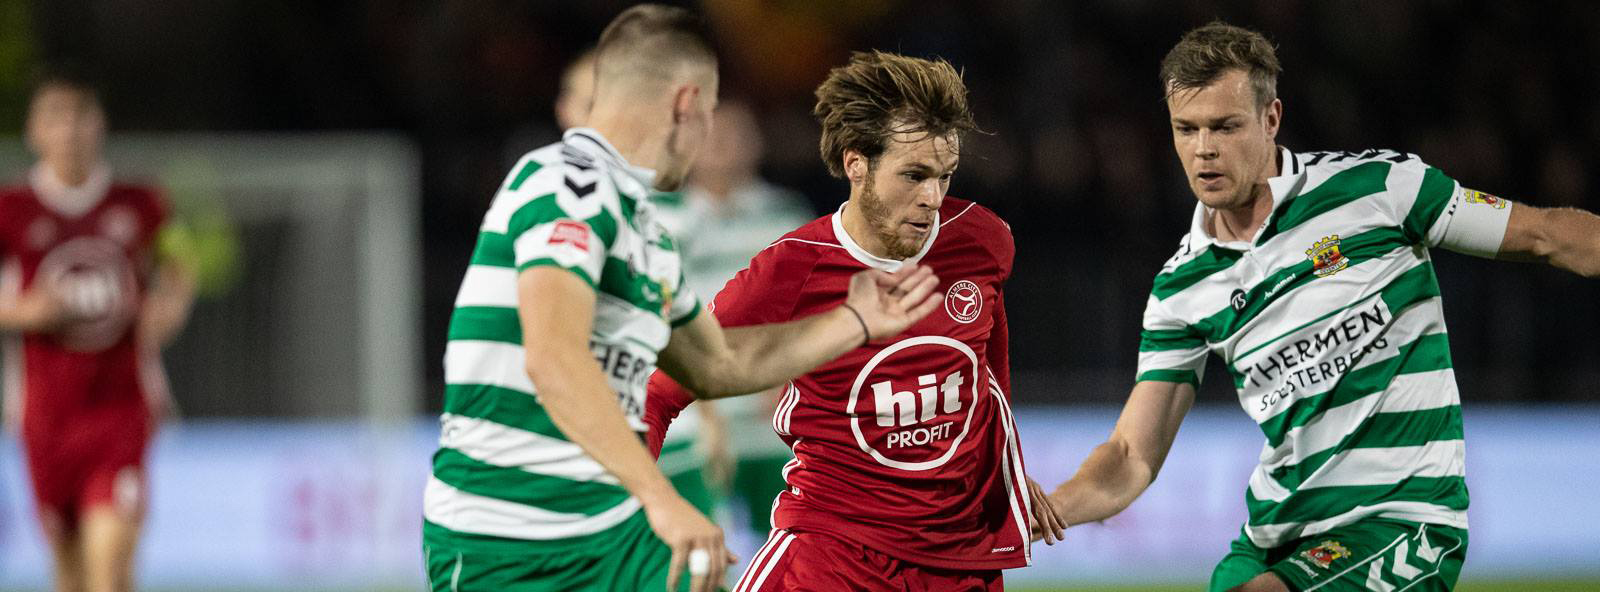 Almere City komt tekort in matige topper tegen Go Ahead Eagles